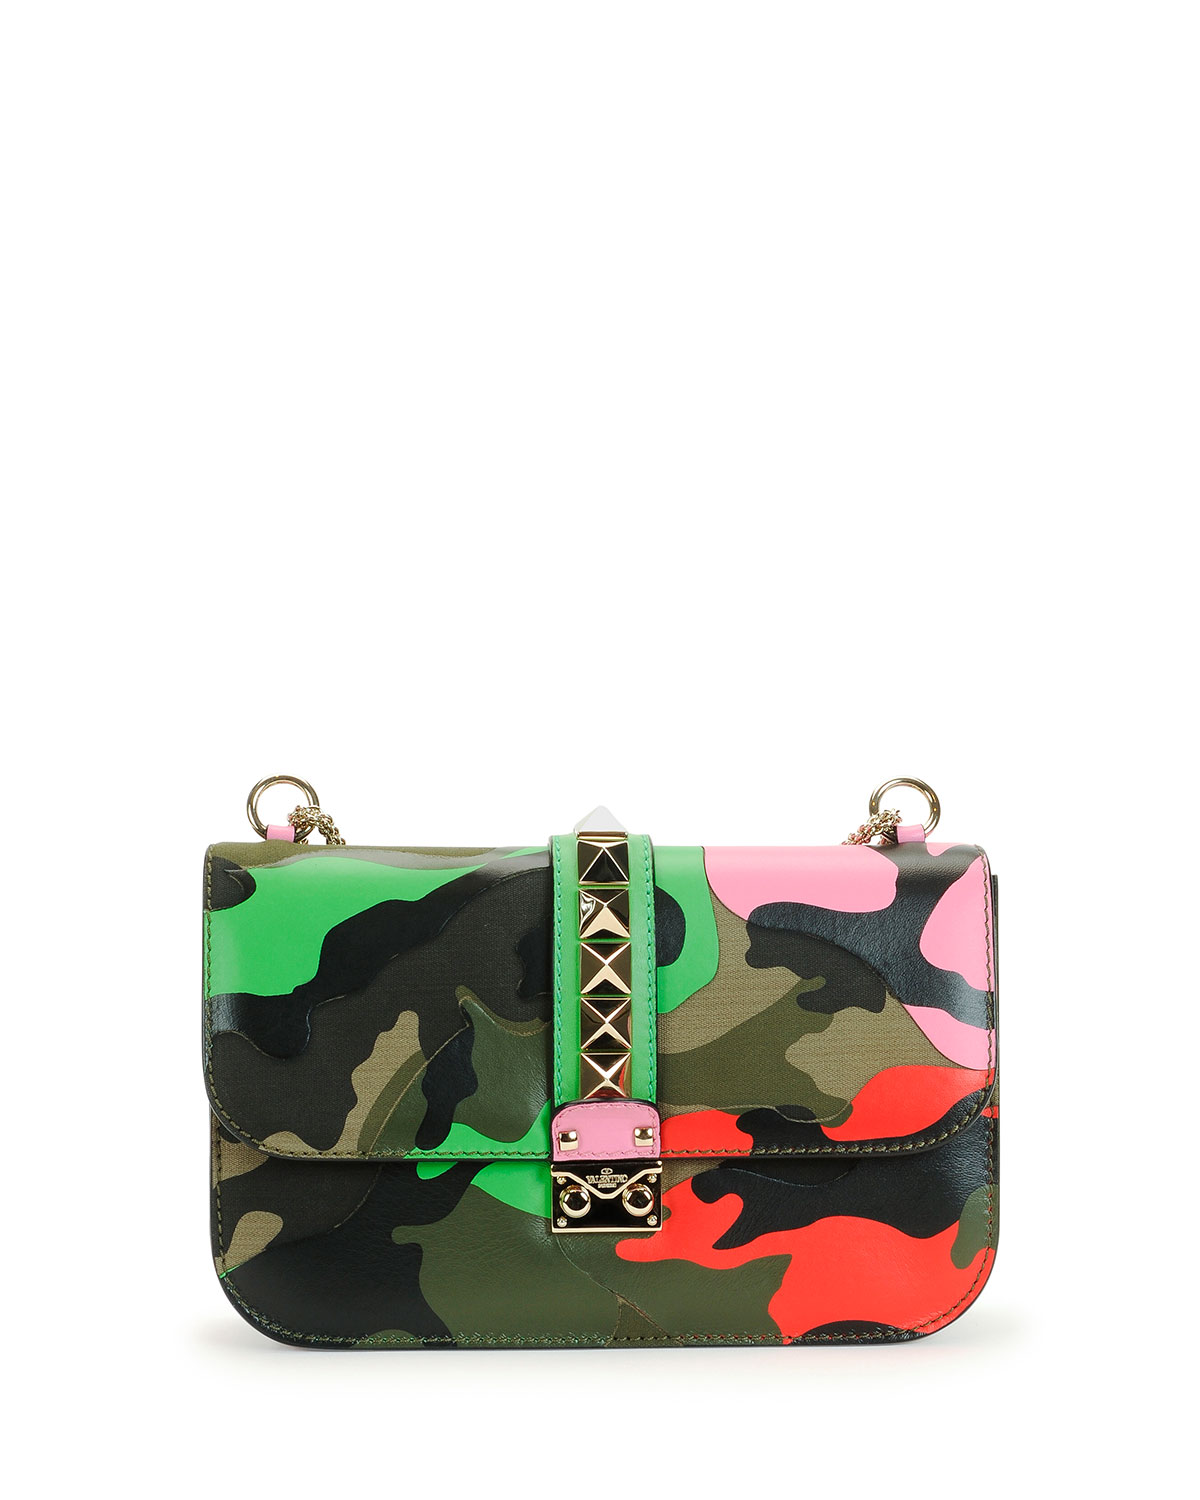 2323934d5d7d6 Valentino Garavani Lock Psychedelic Camo Medium Shoulder Bag ...